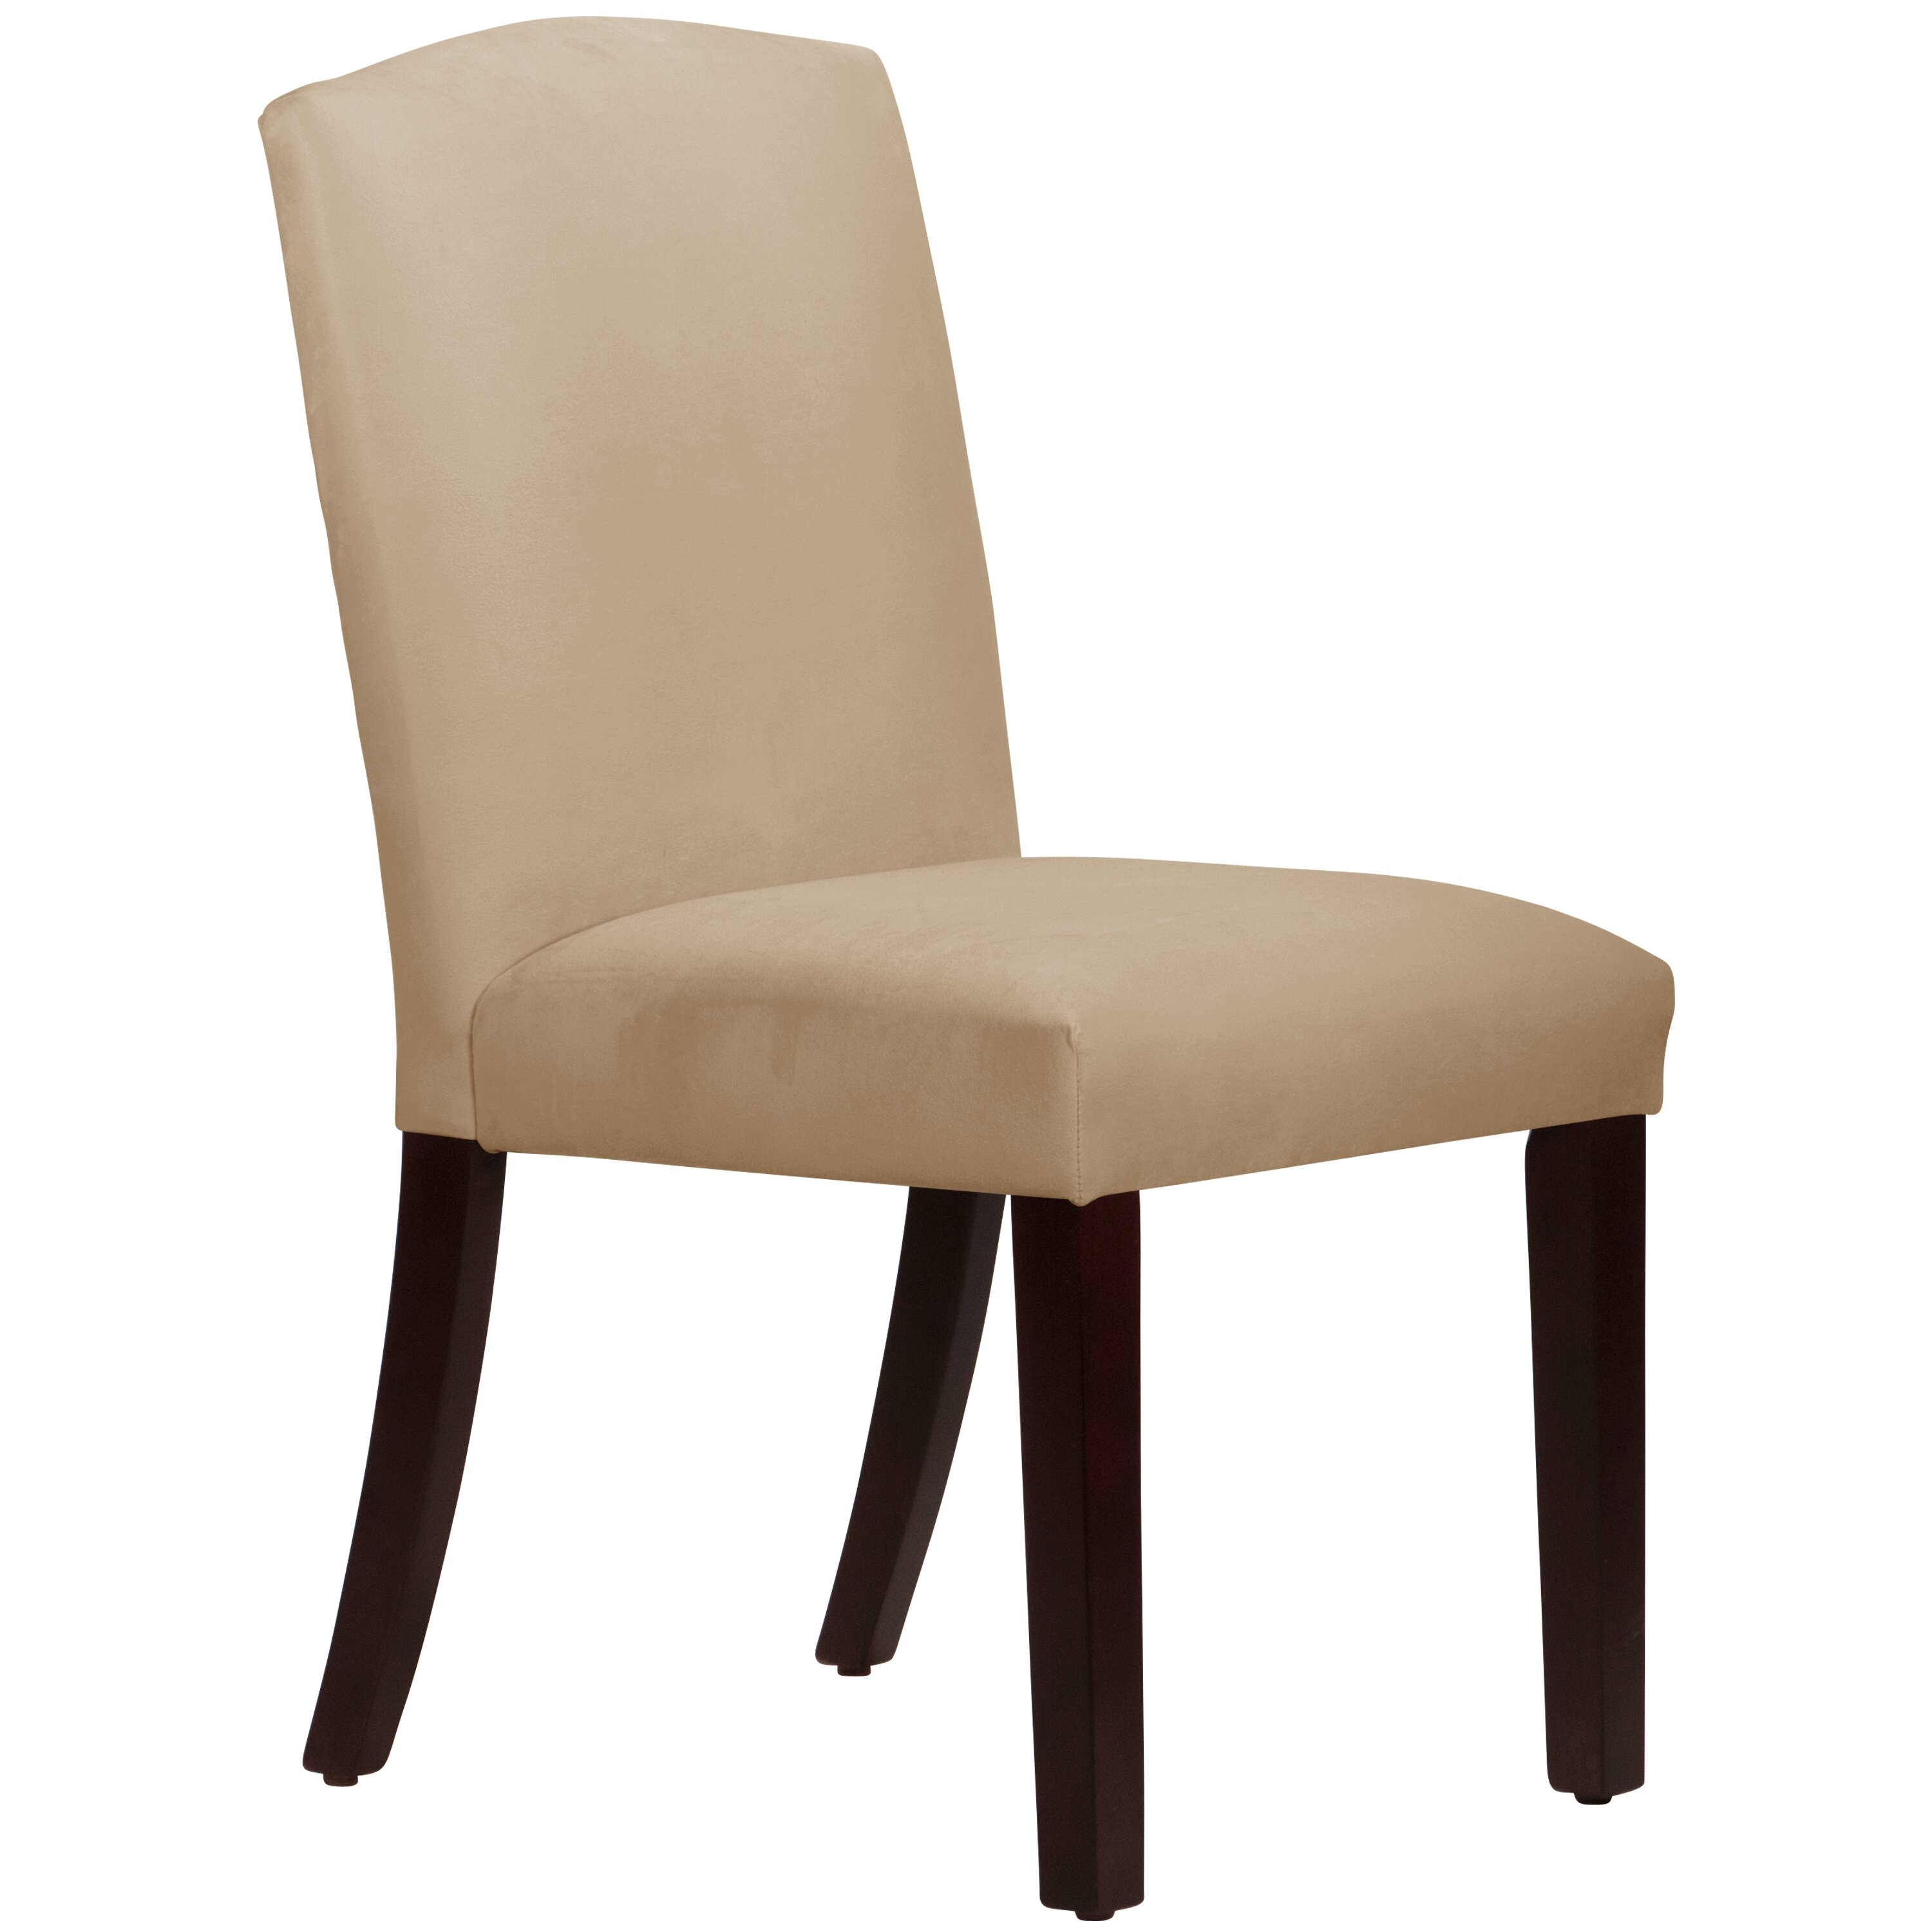 Nadia Parsons Chair by Wayfair Custom Upholstery